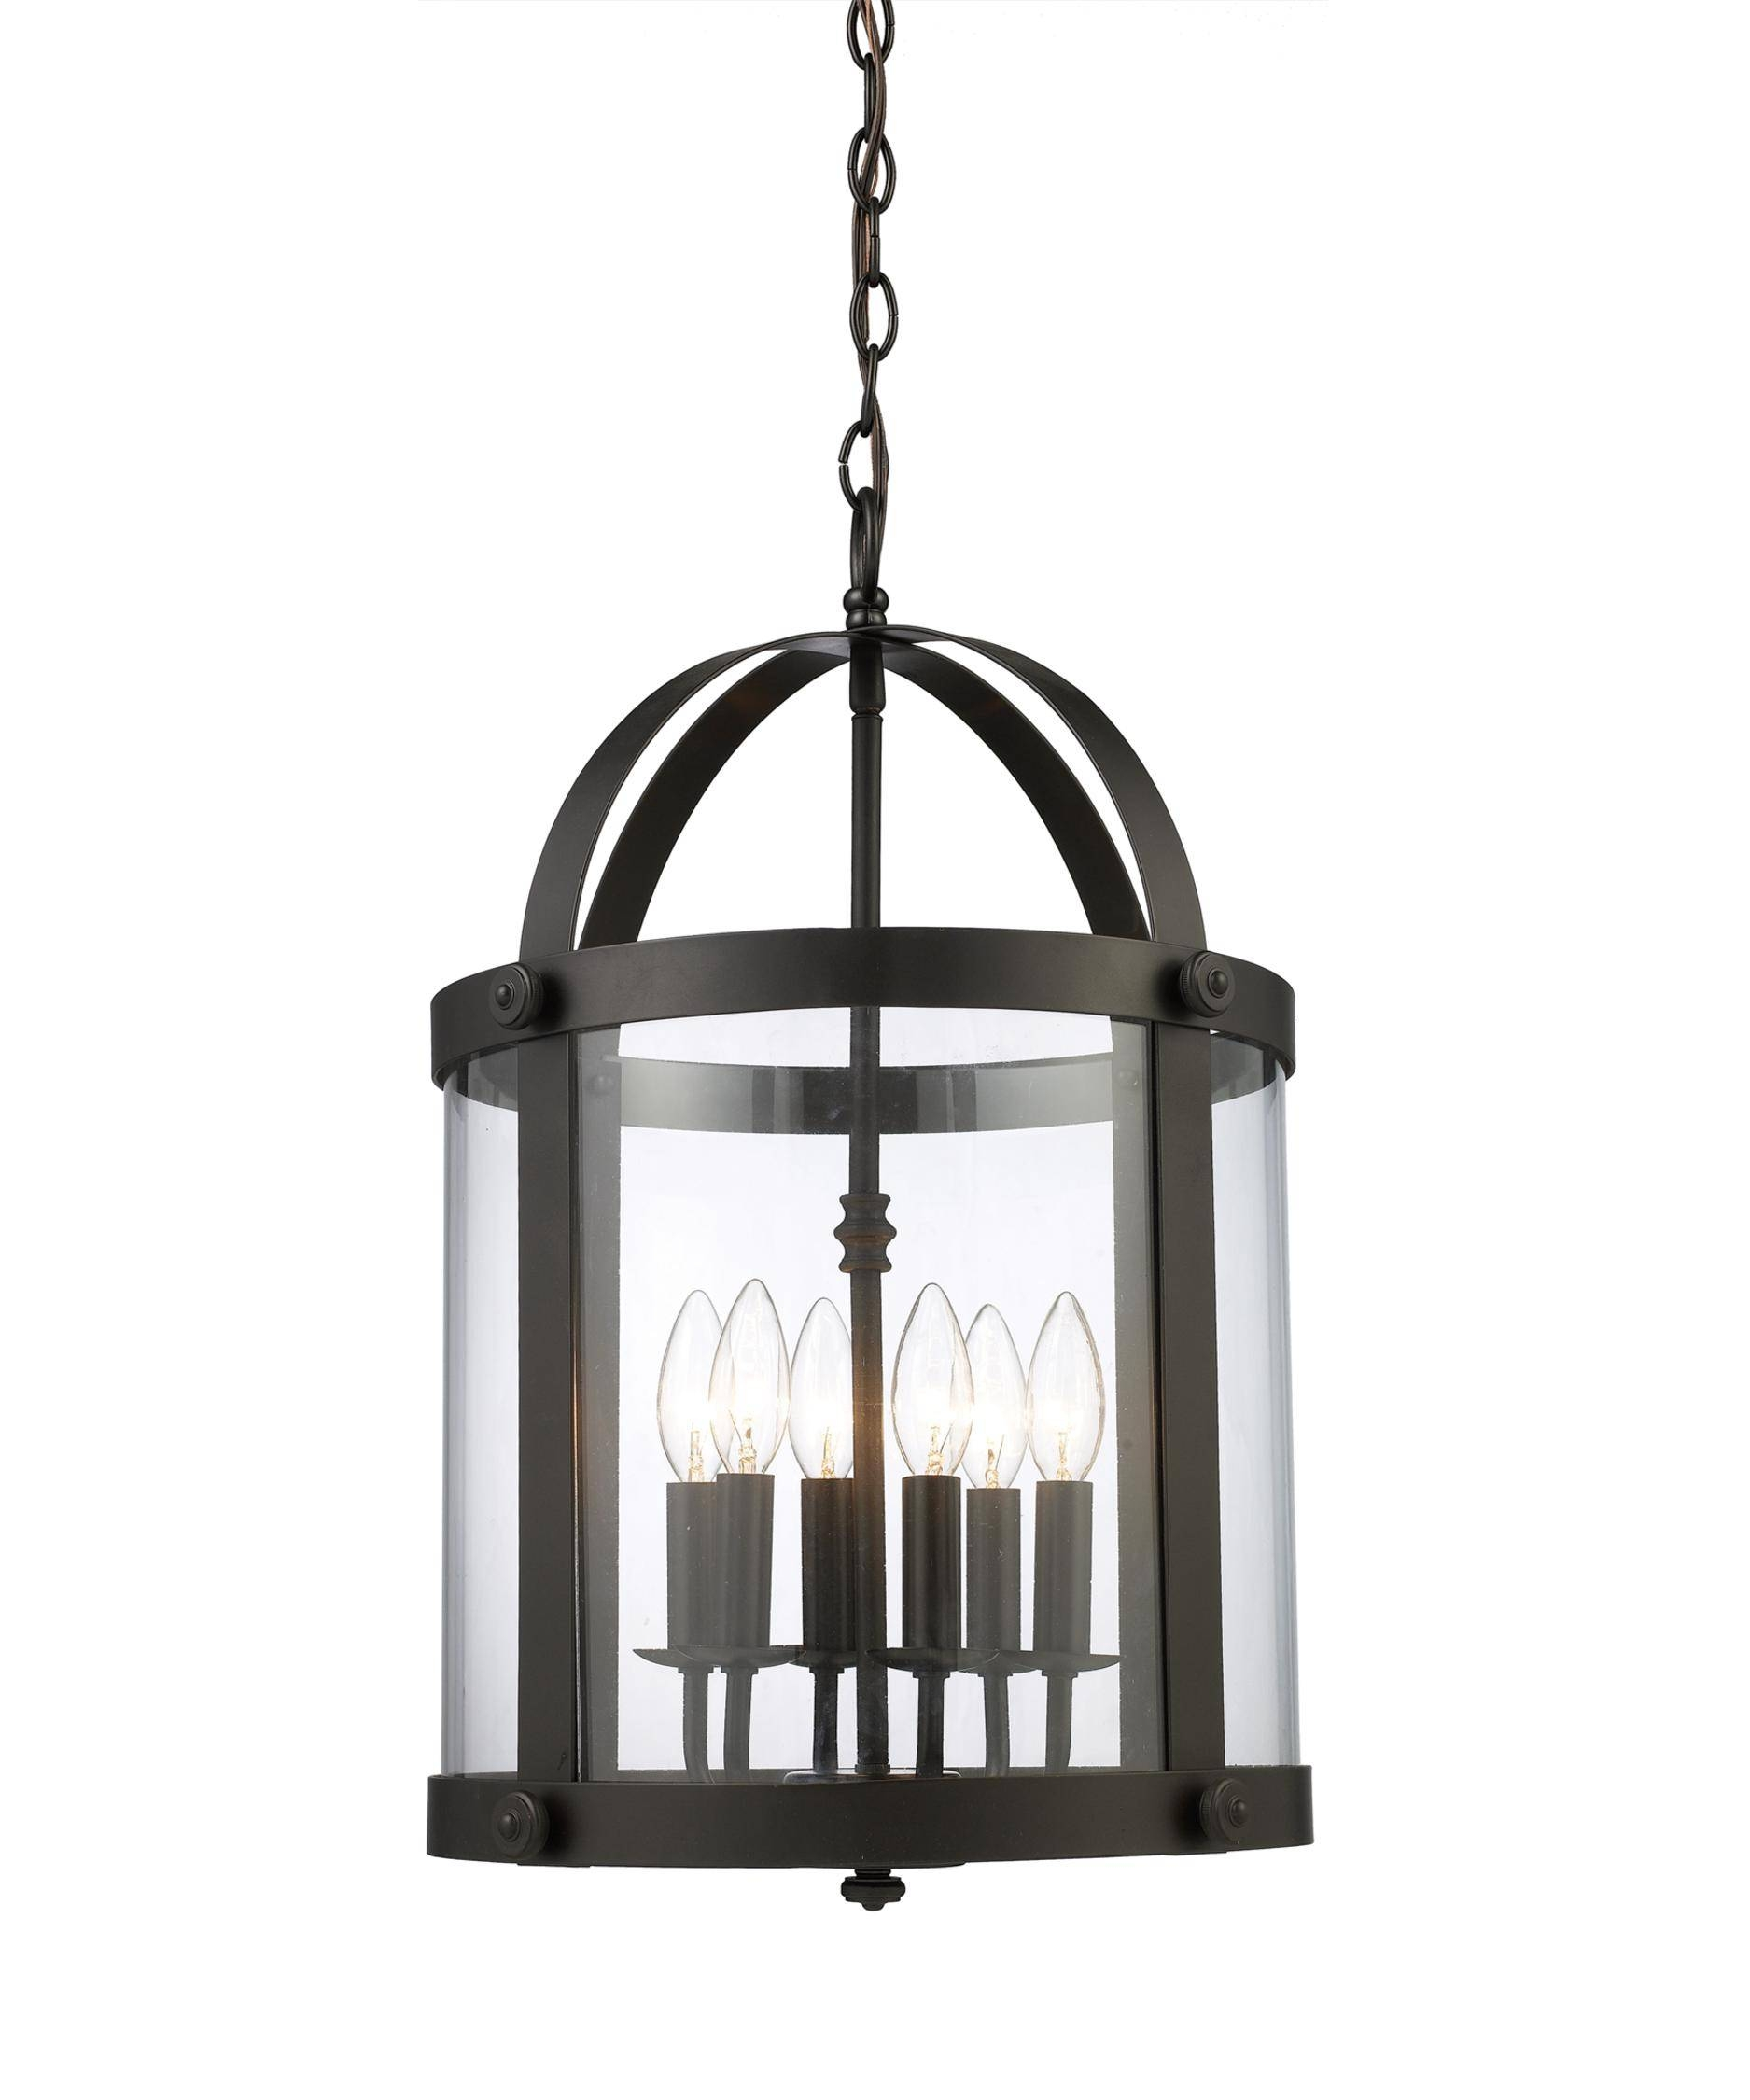 Elk Lighting 66282 6 Chesapeake 14 Inch Wide Foyer Pendant Intended For Foyer Pendant Light Fixtures (View 7 of 15)